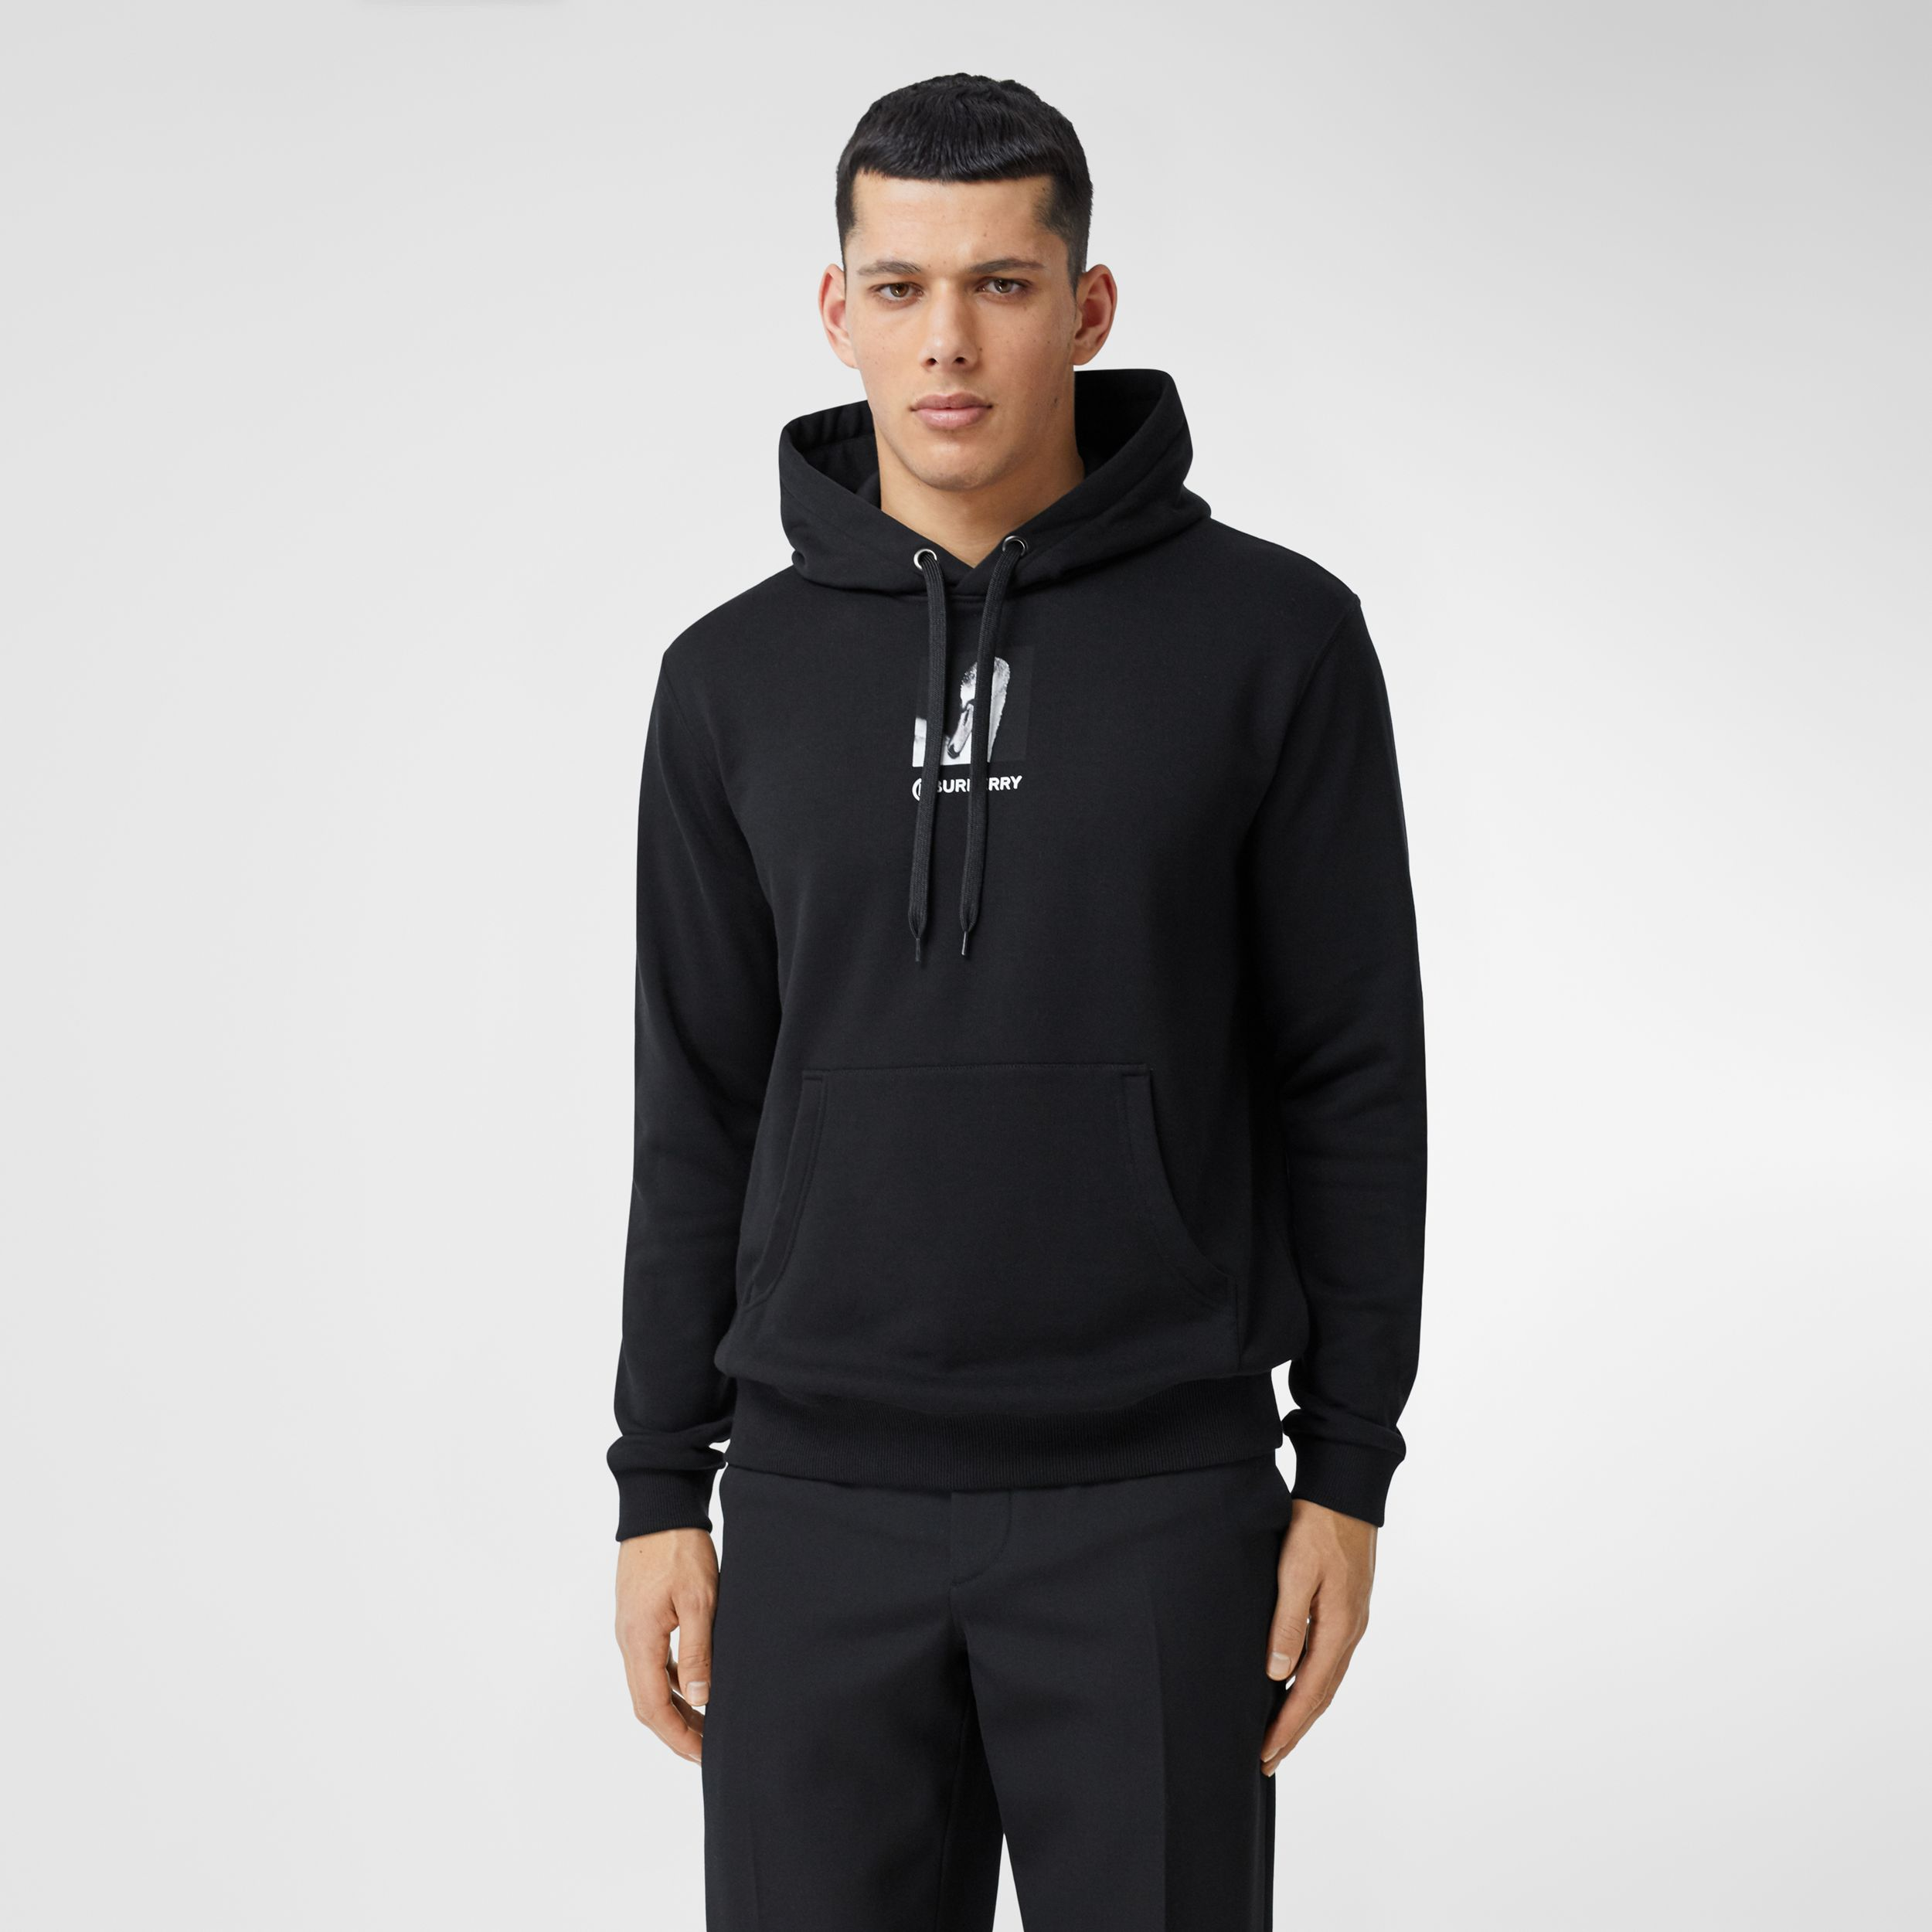 Montage Print Cotton Hoodie in Black - Men | Burberry - 1